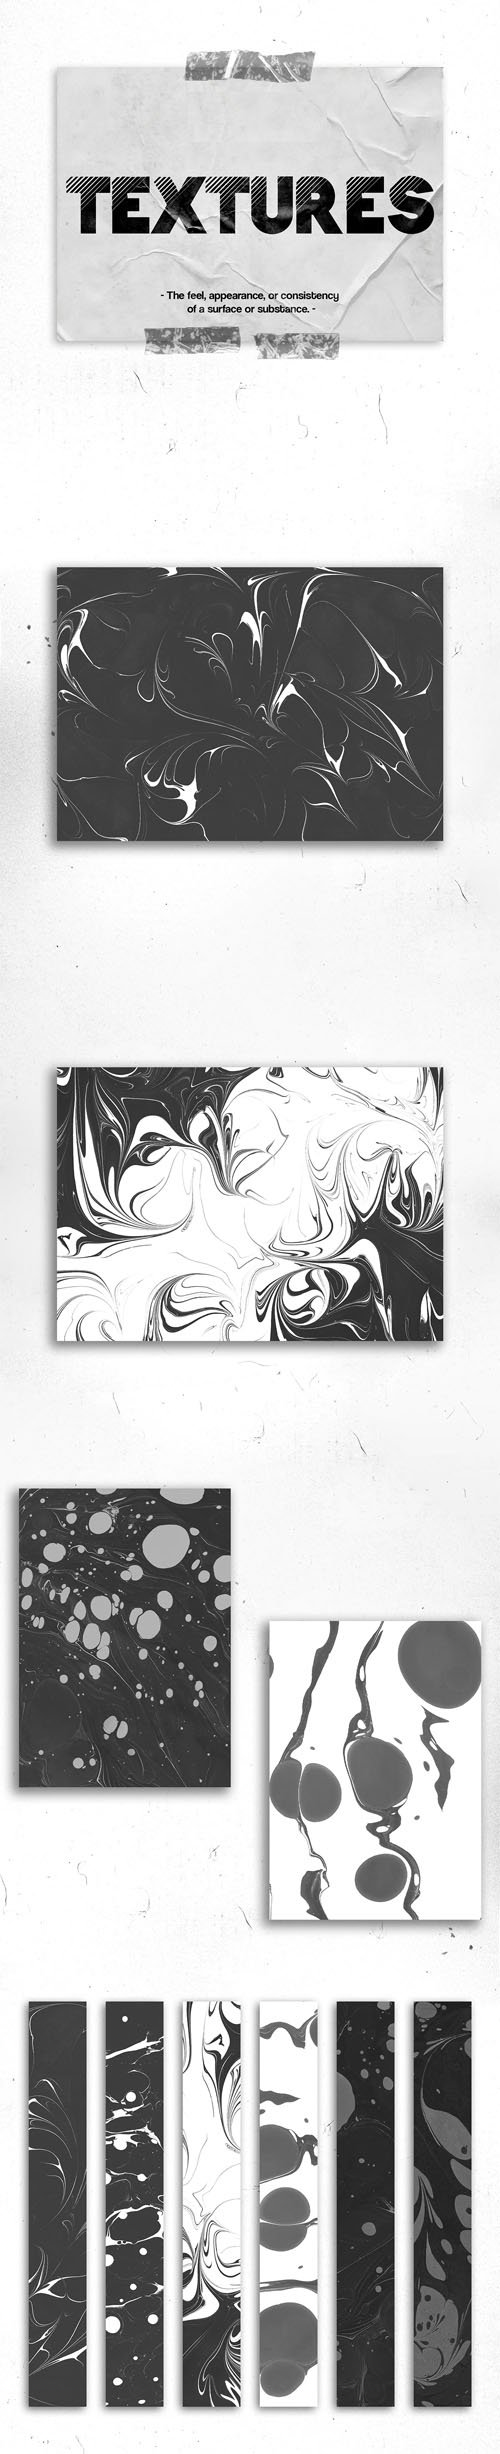 Abstract Black & White Textures Pack